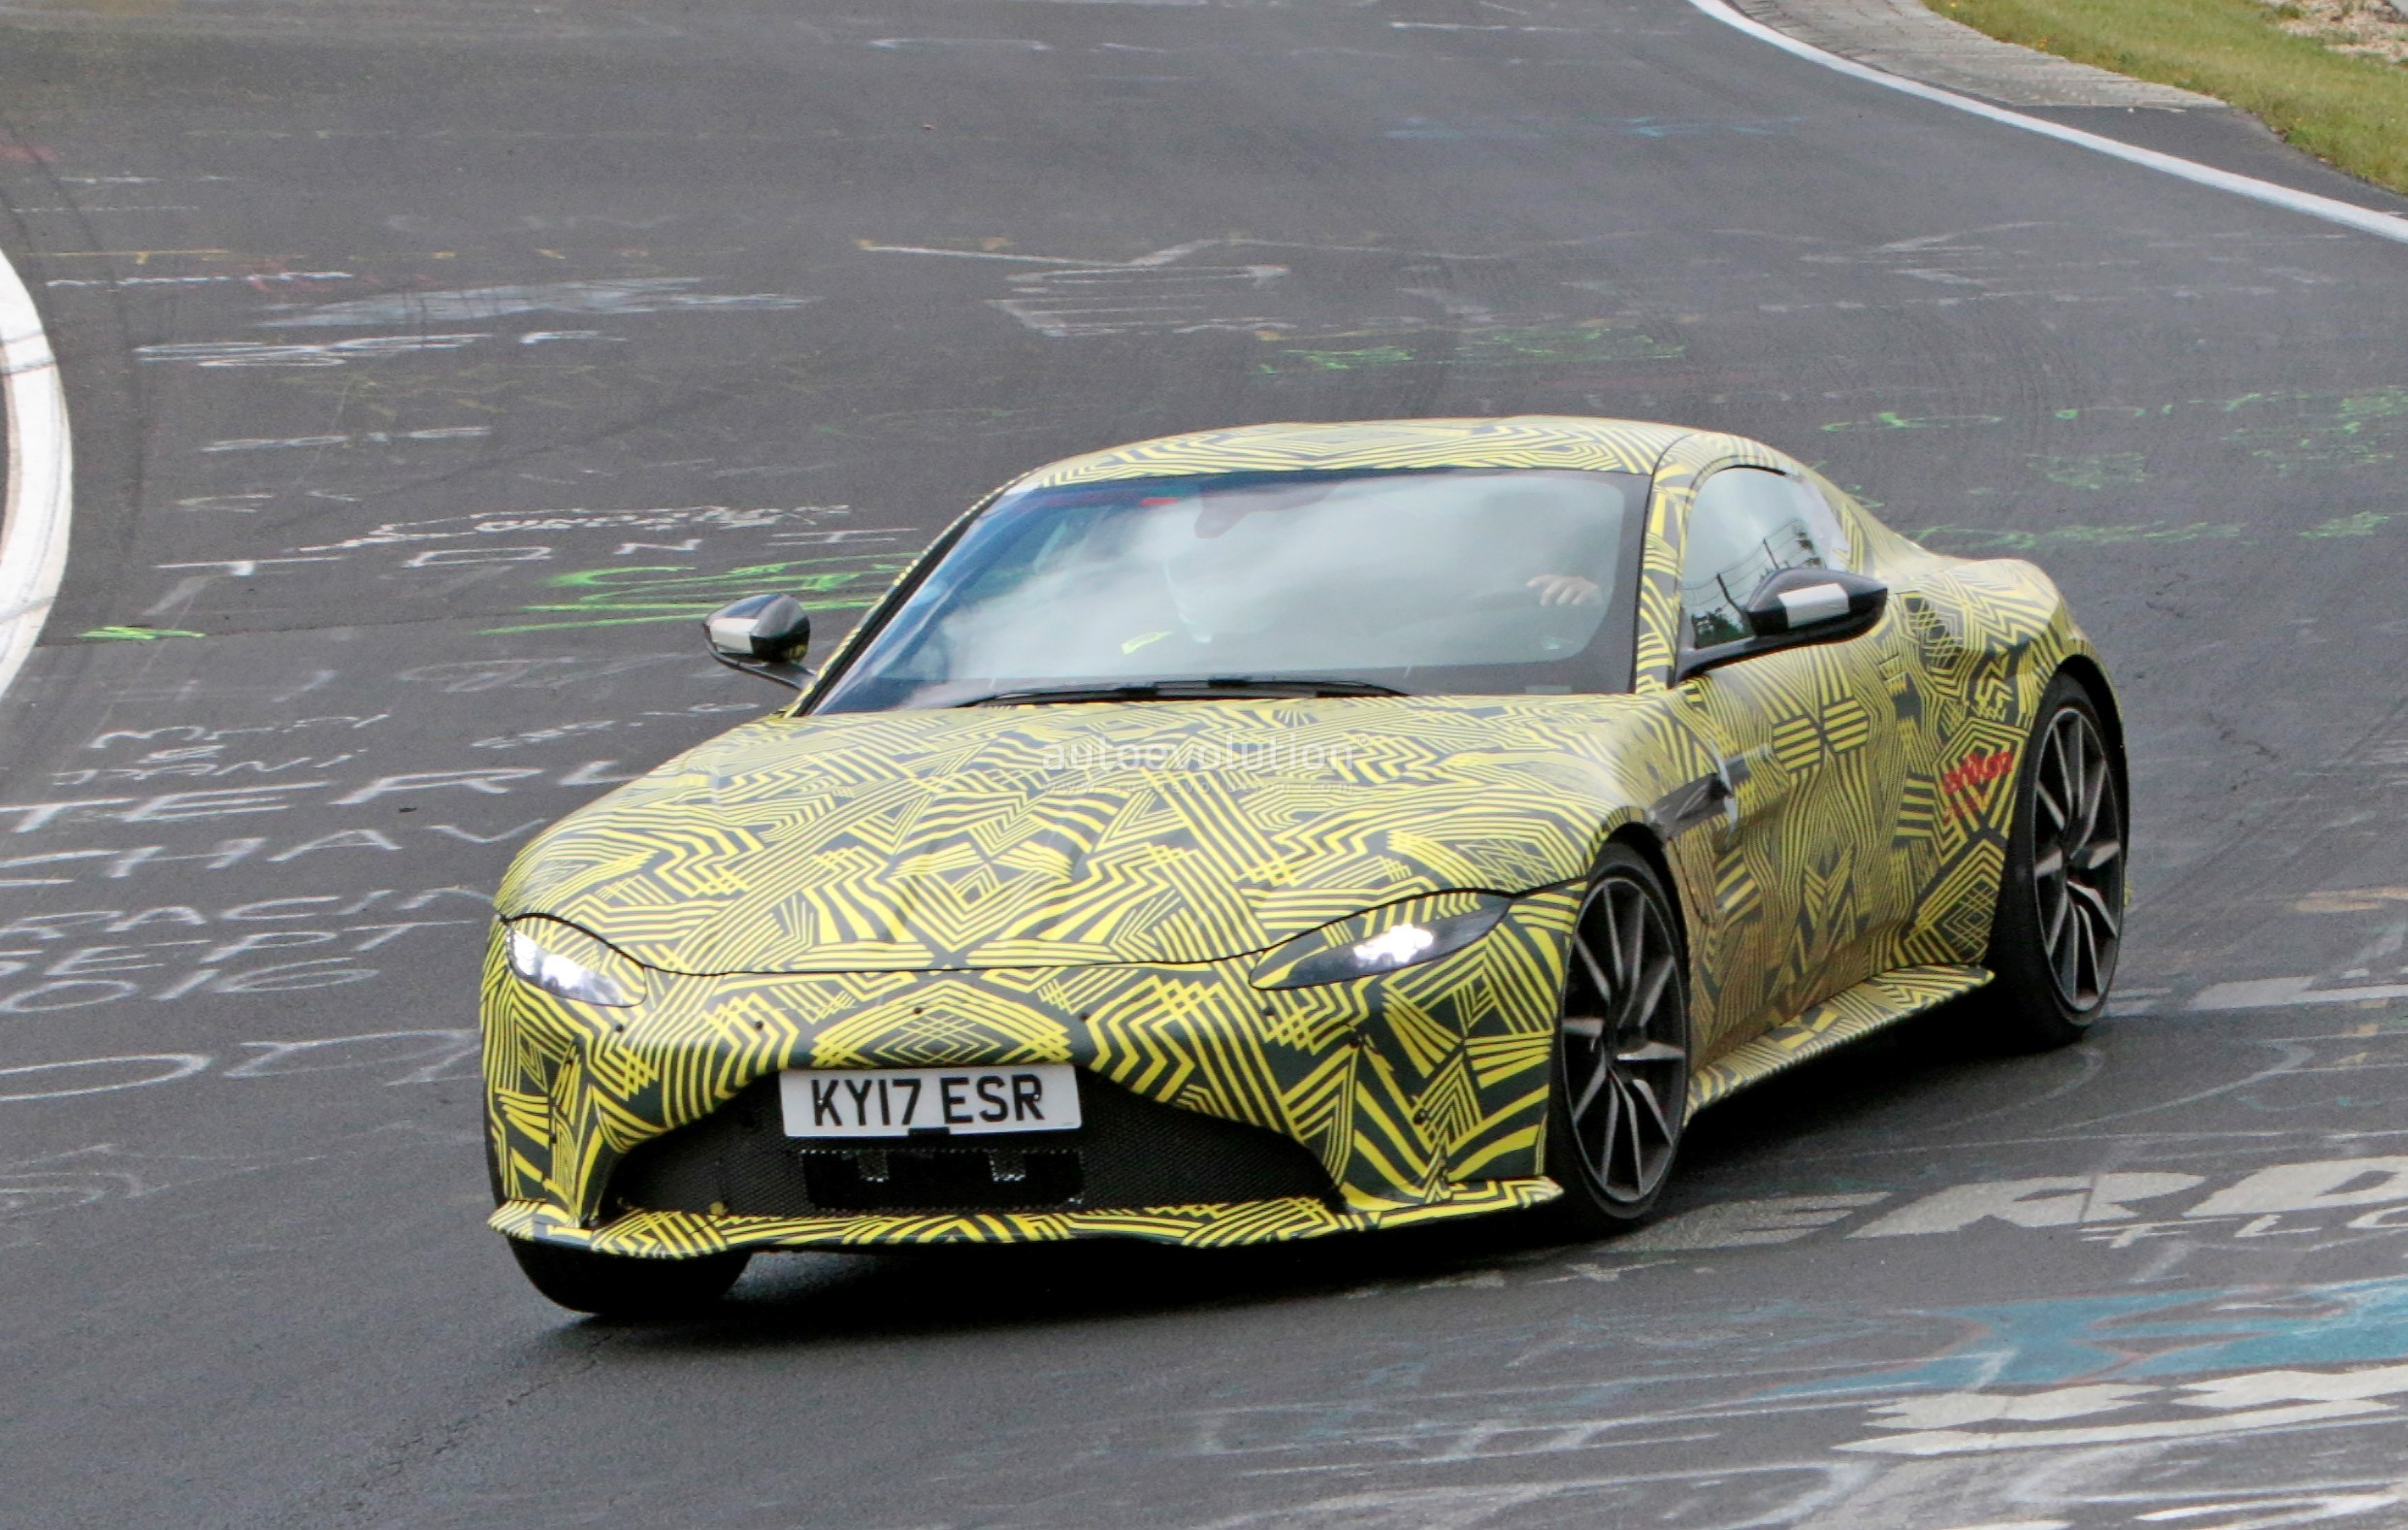 Aston Martin Vantage Spied With Zf Speed Automatic Transmission